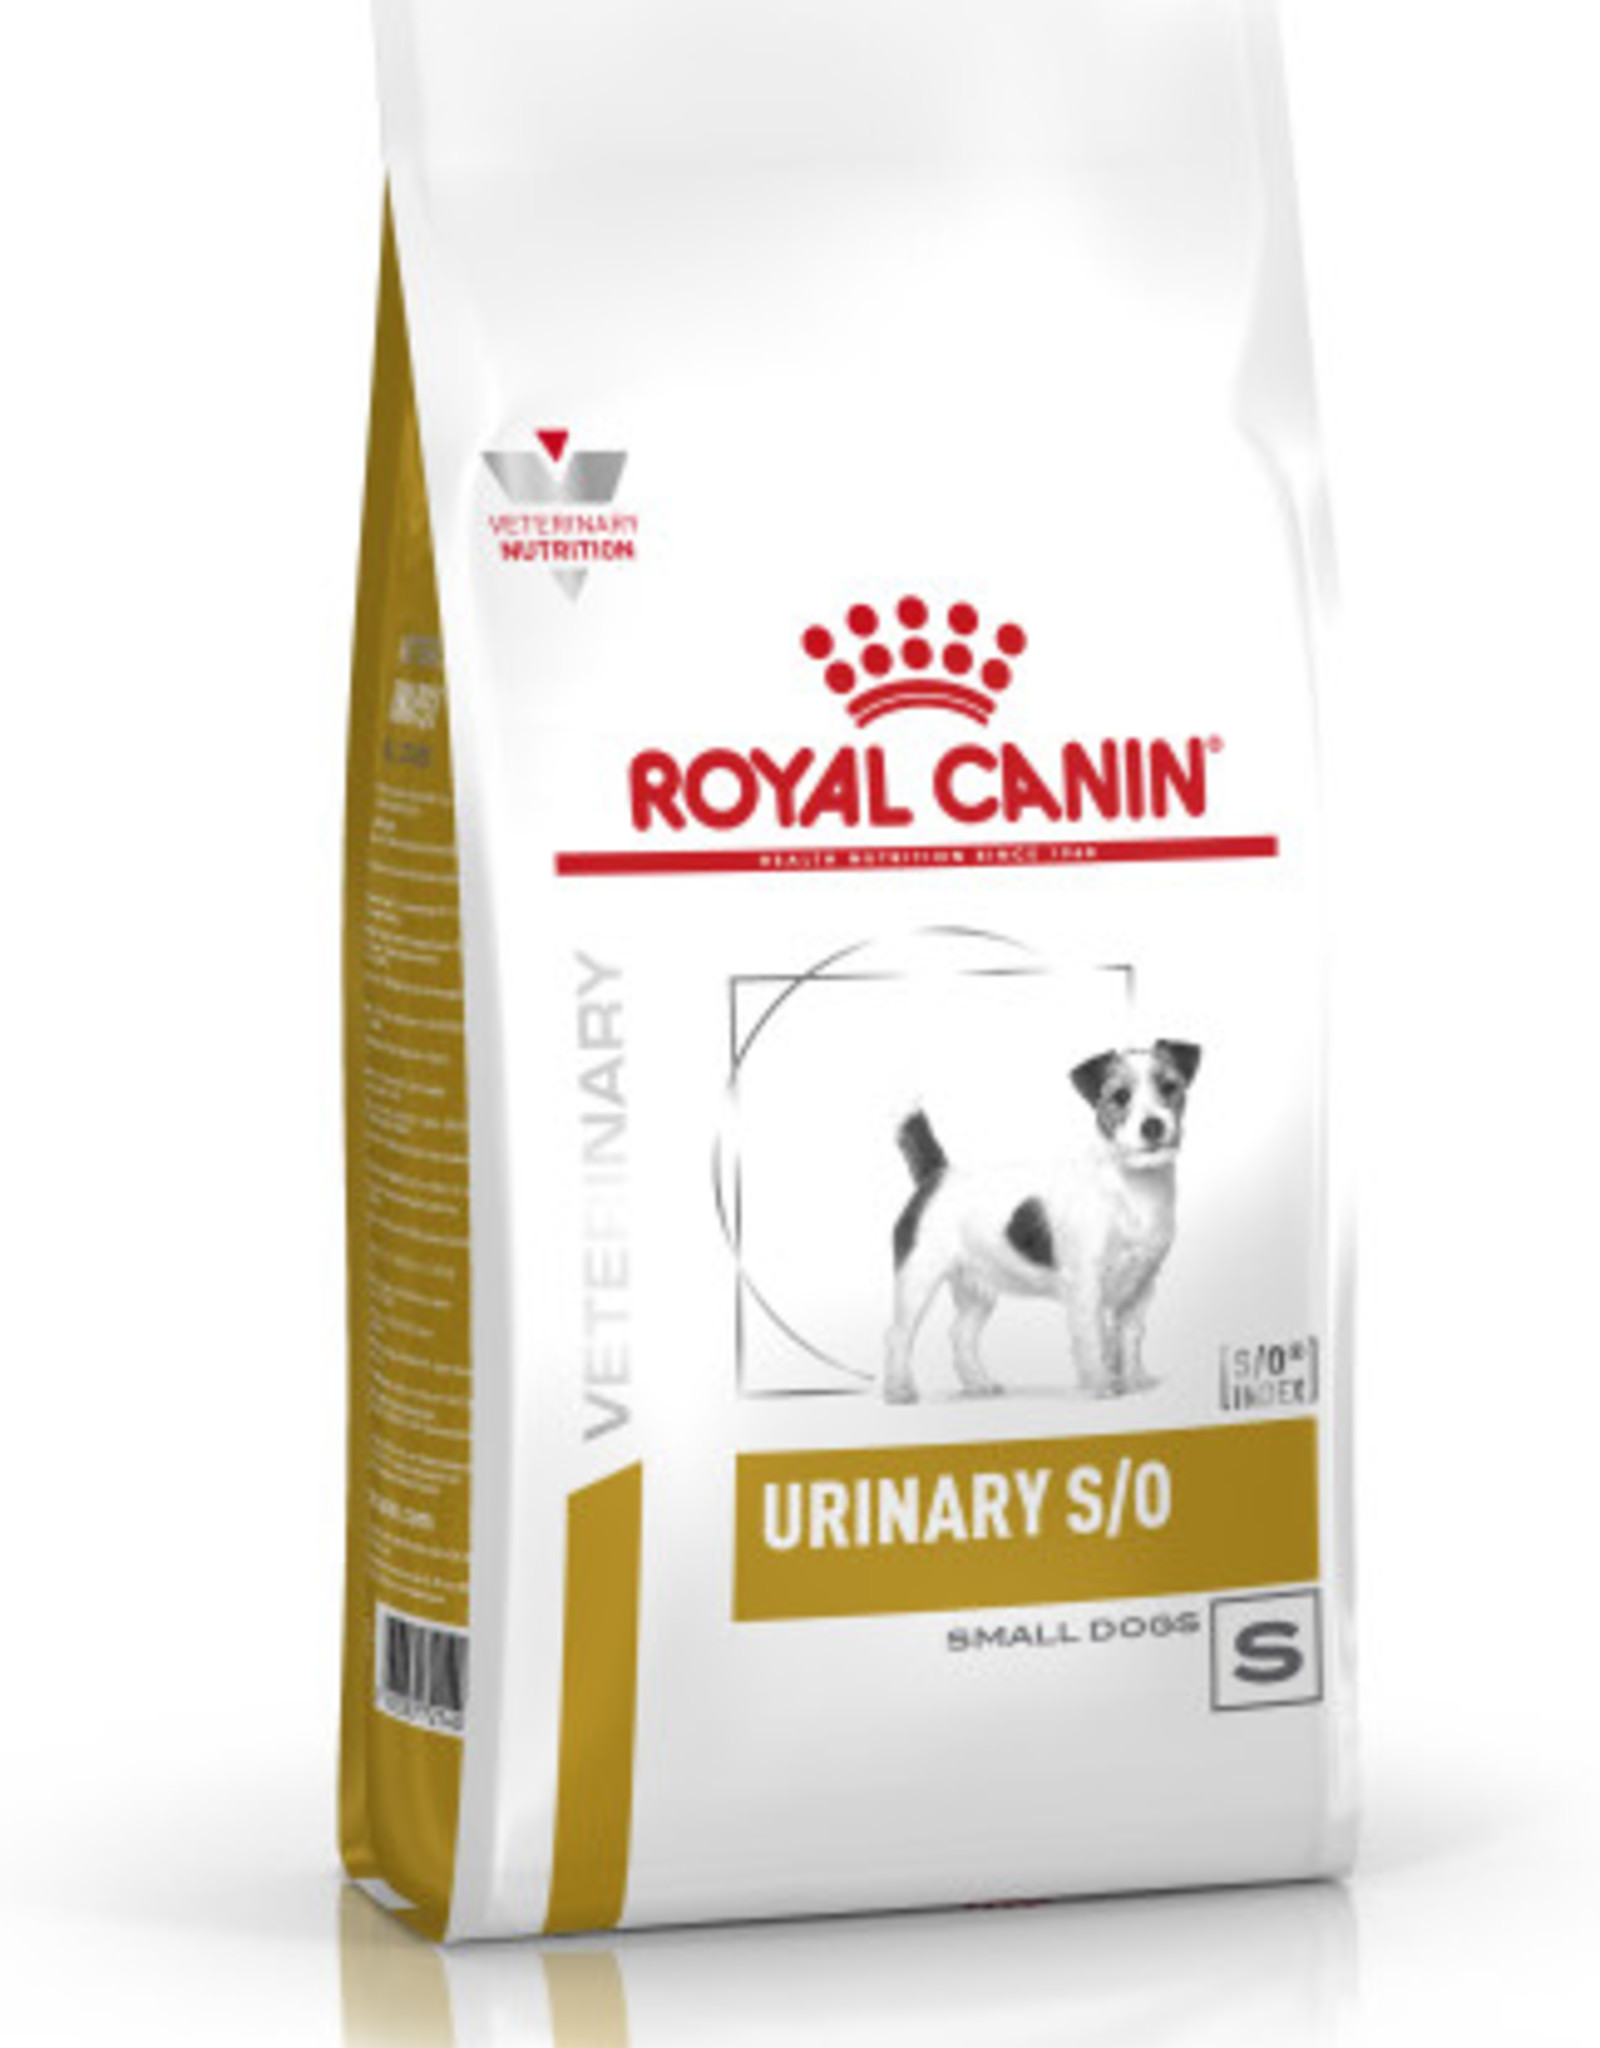 Royal Canin Royal Canin Urinary S/o Small Hund 1,5kg